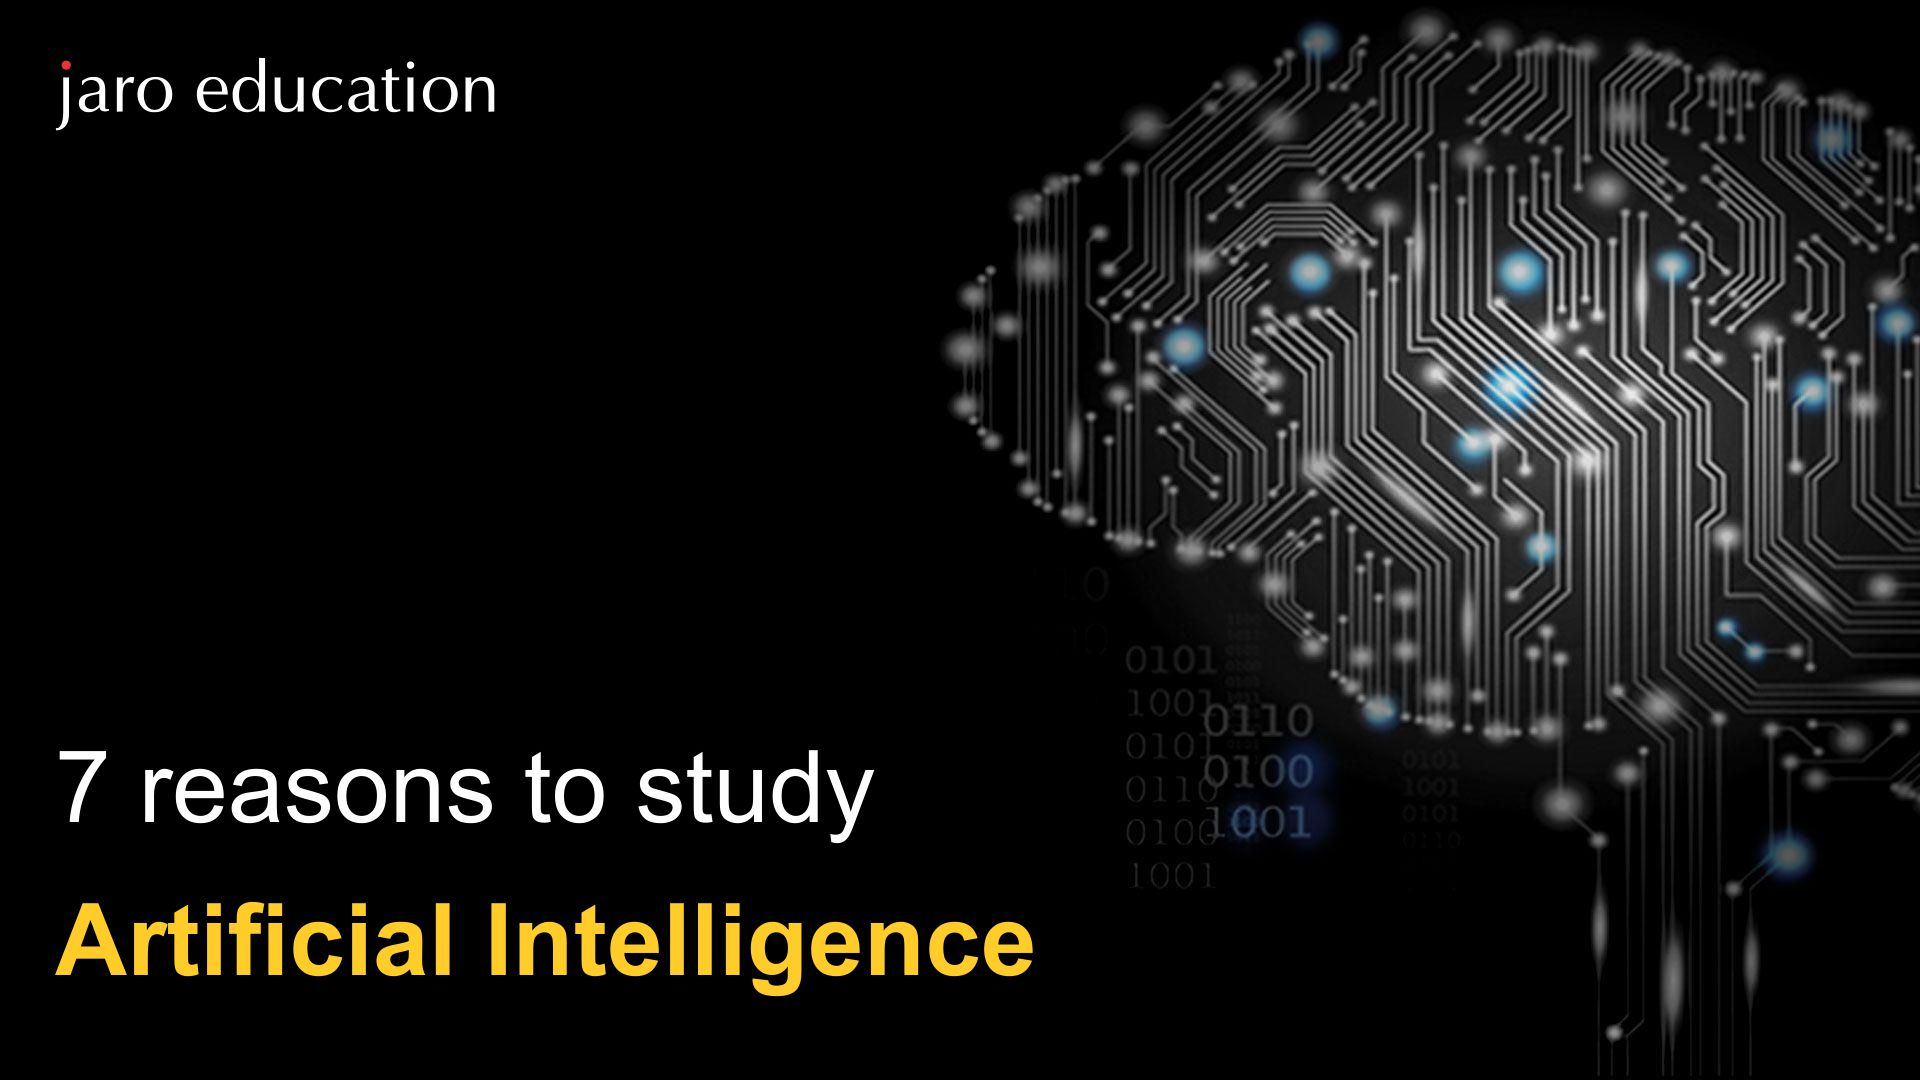 7 Reasons to Study Artificial Intelligence